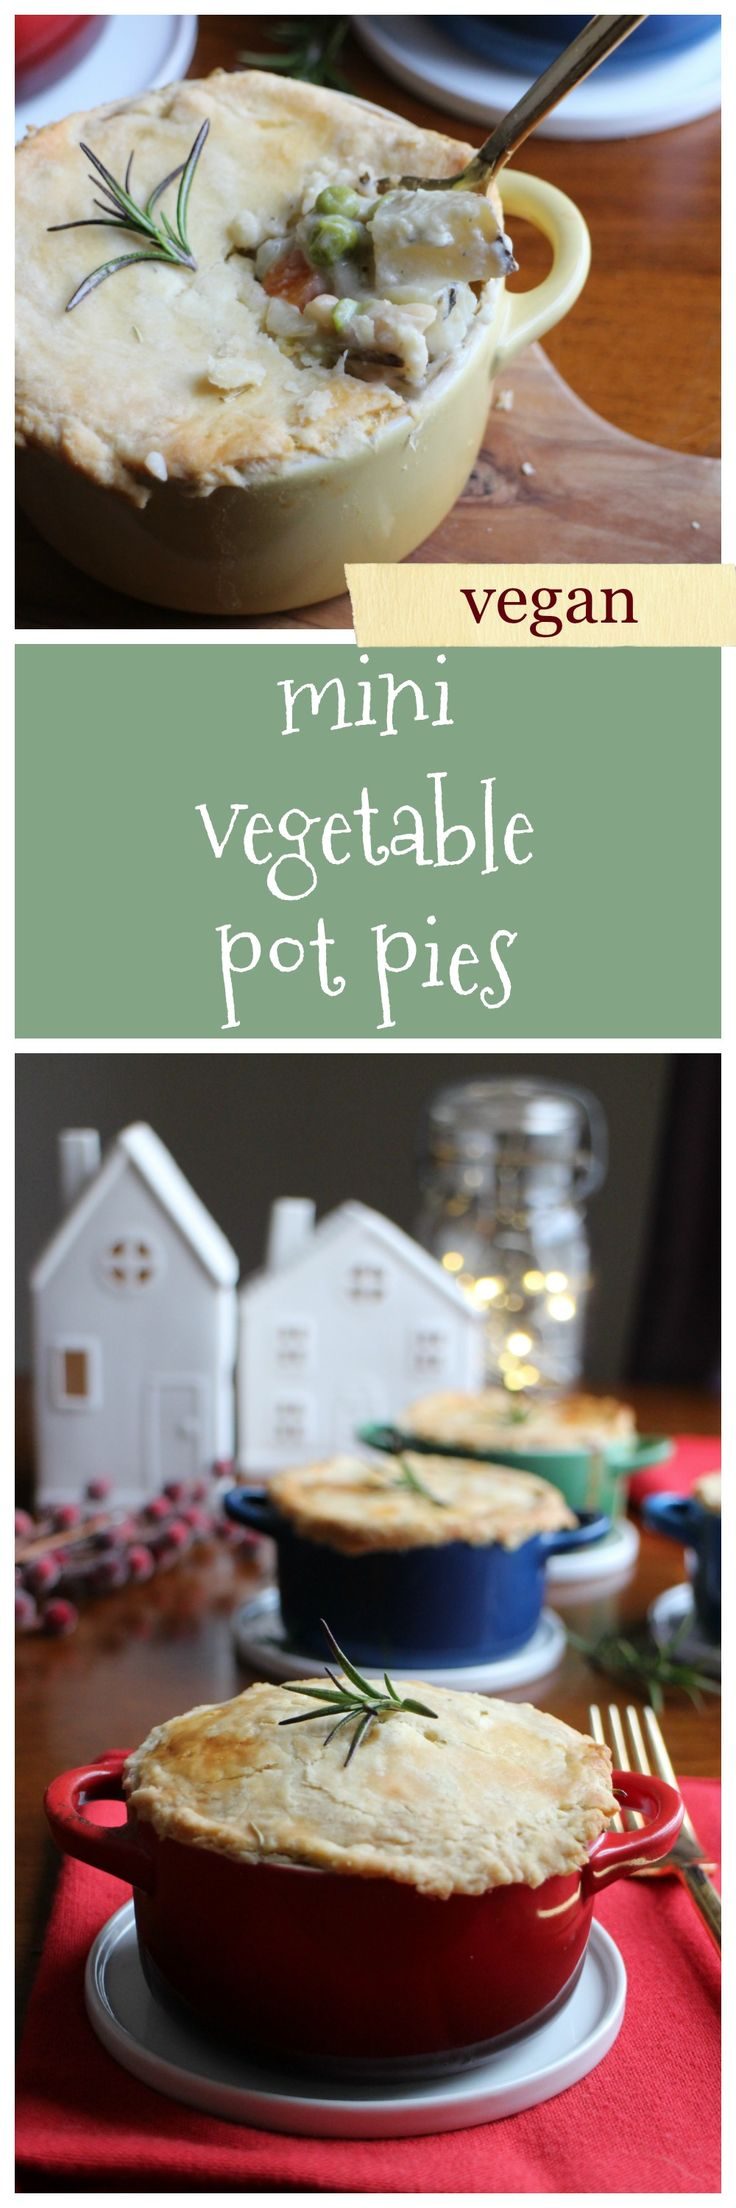 Mini vegetable pot pie: The perfect vegan main course for your holiday gathering or dinner party. They are made with chickpeas, vegetables aplenty, and cashew cream. On top, a flaky pie crust using @bobsredmill flour #BobsHolidayCheer | cadryskitchen.com